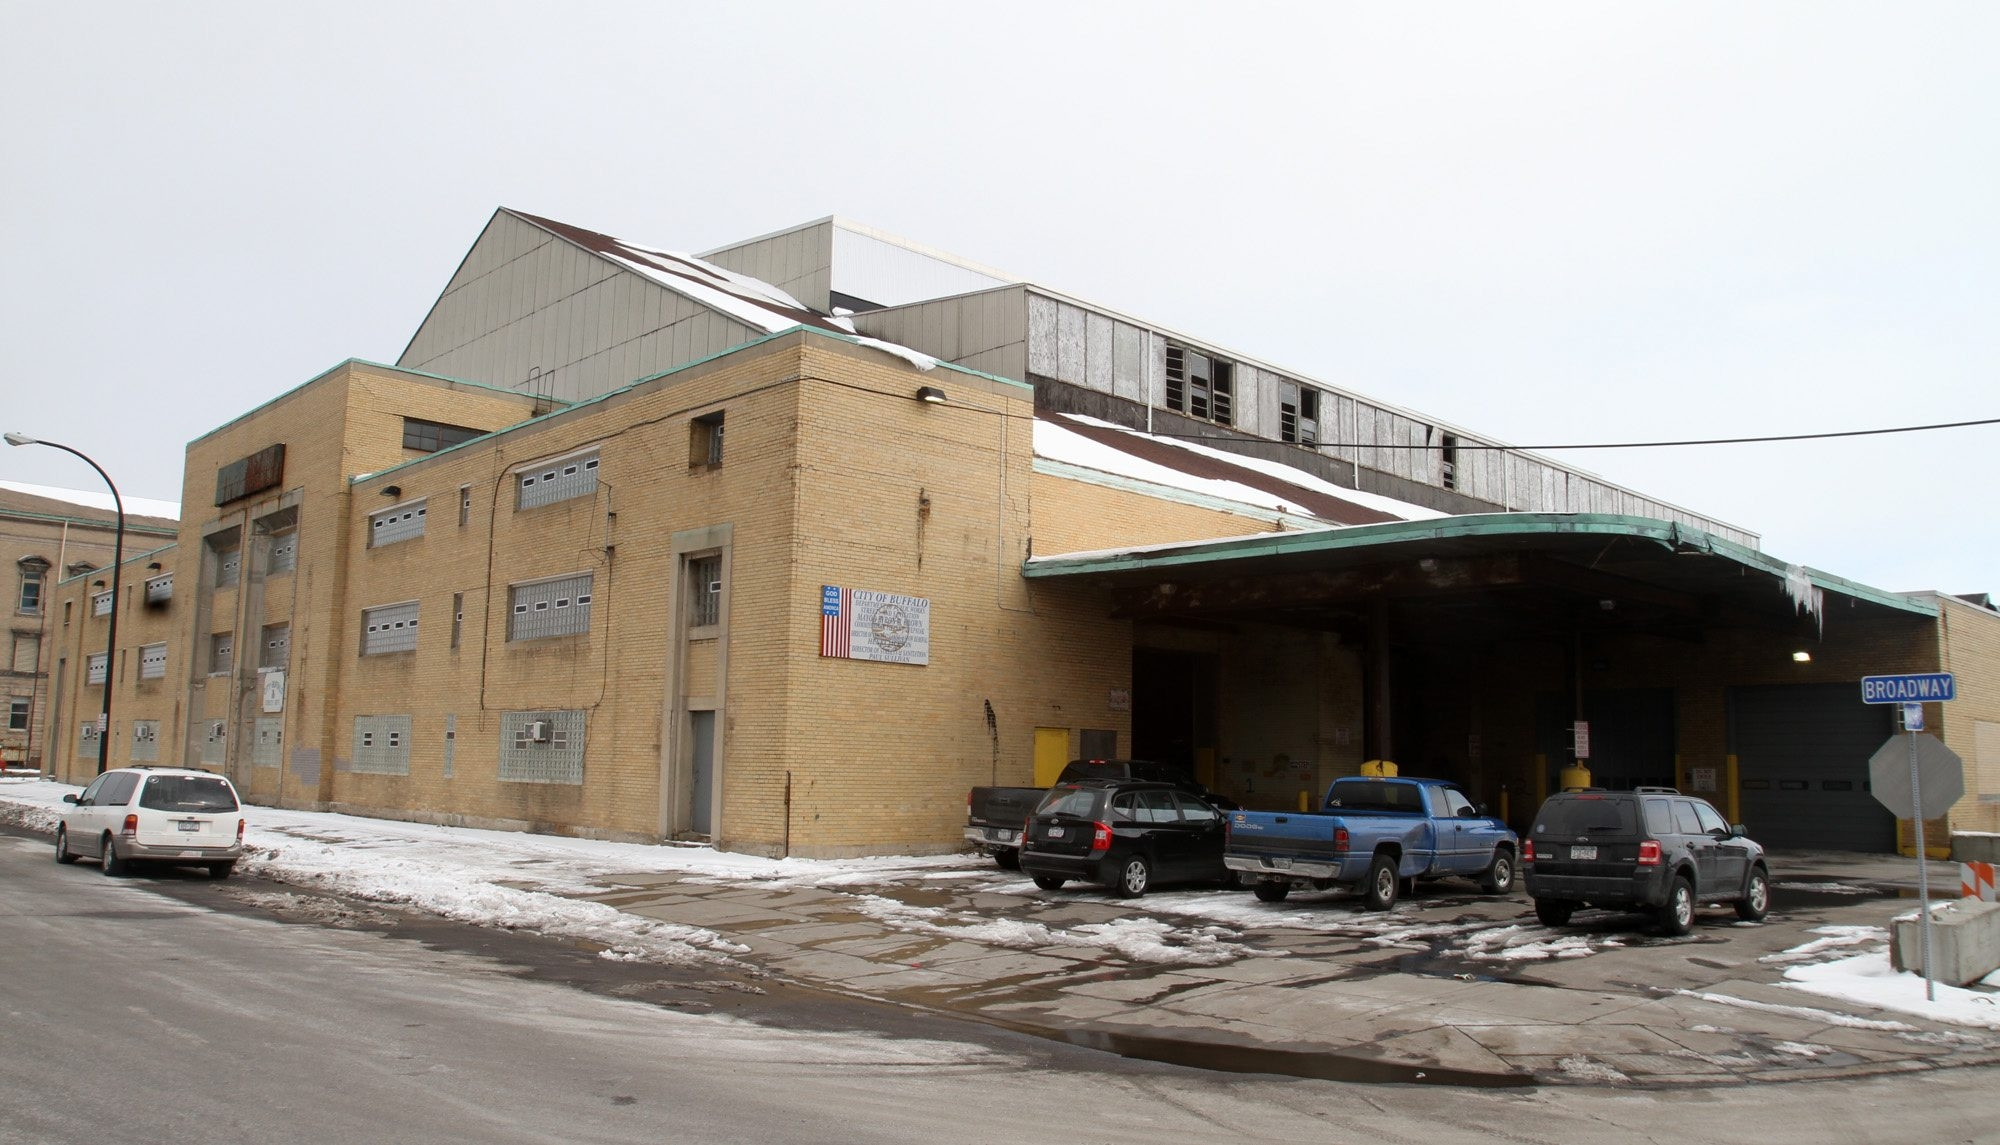 There is likely a higher use than a public works garage for the property occupied by the Broadway barns. (John Hickey/Buffalo News file photo)